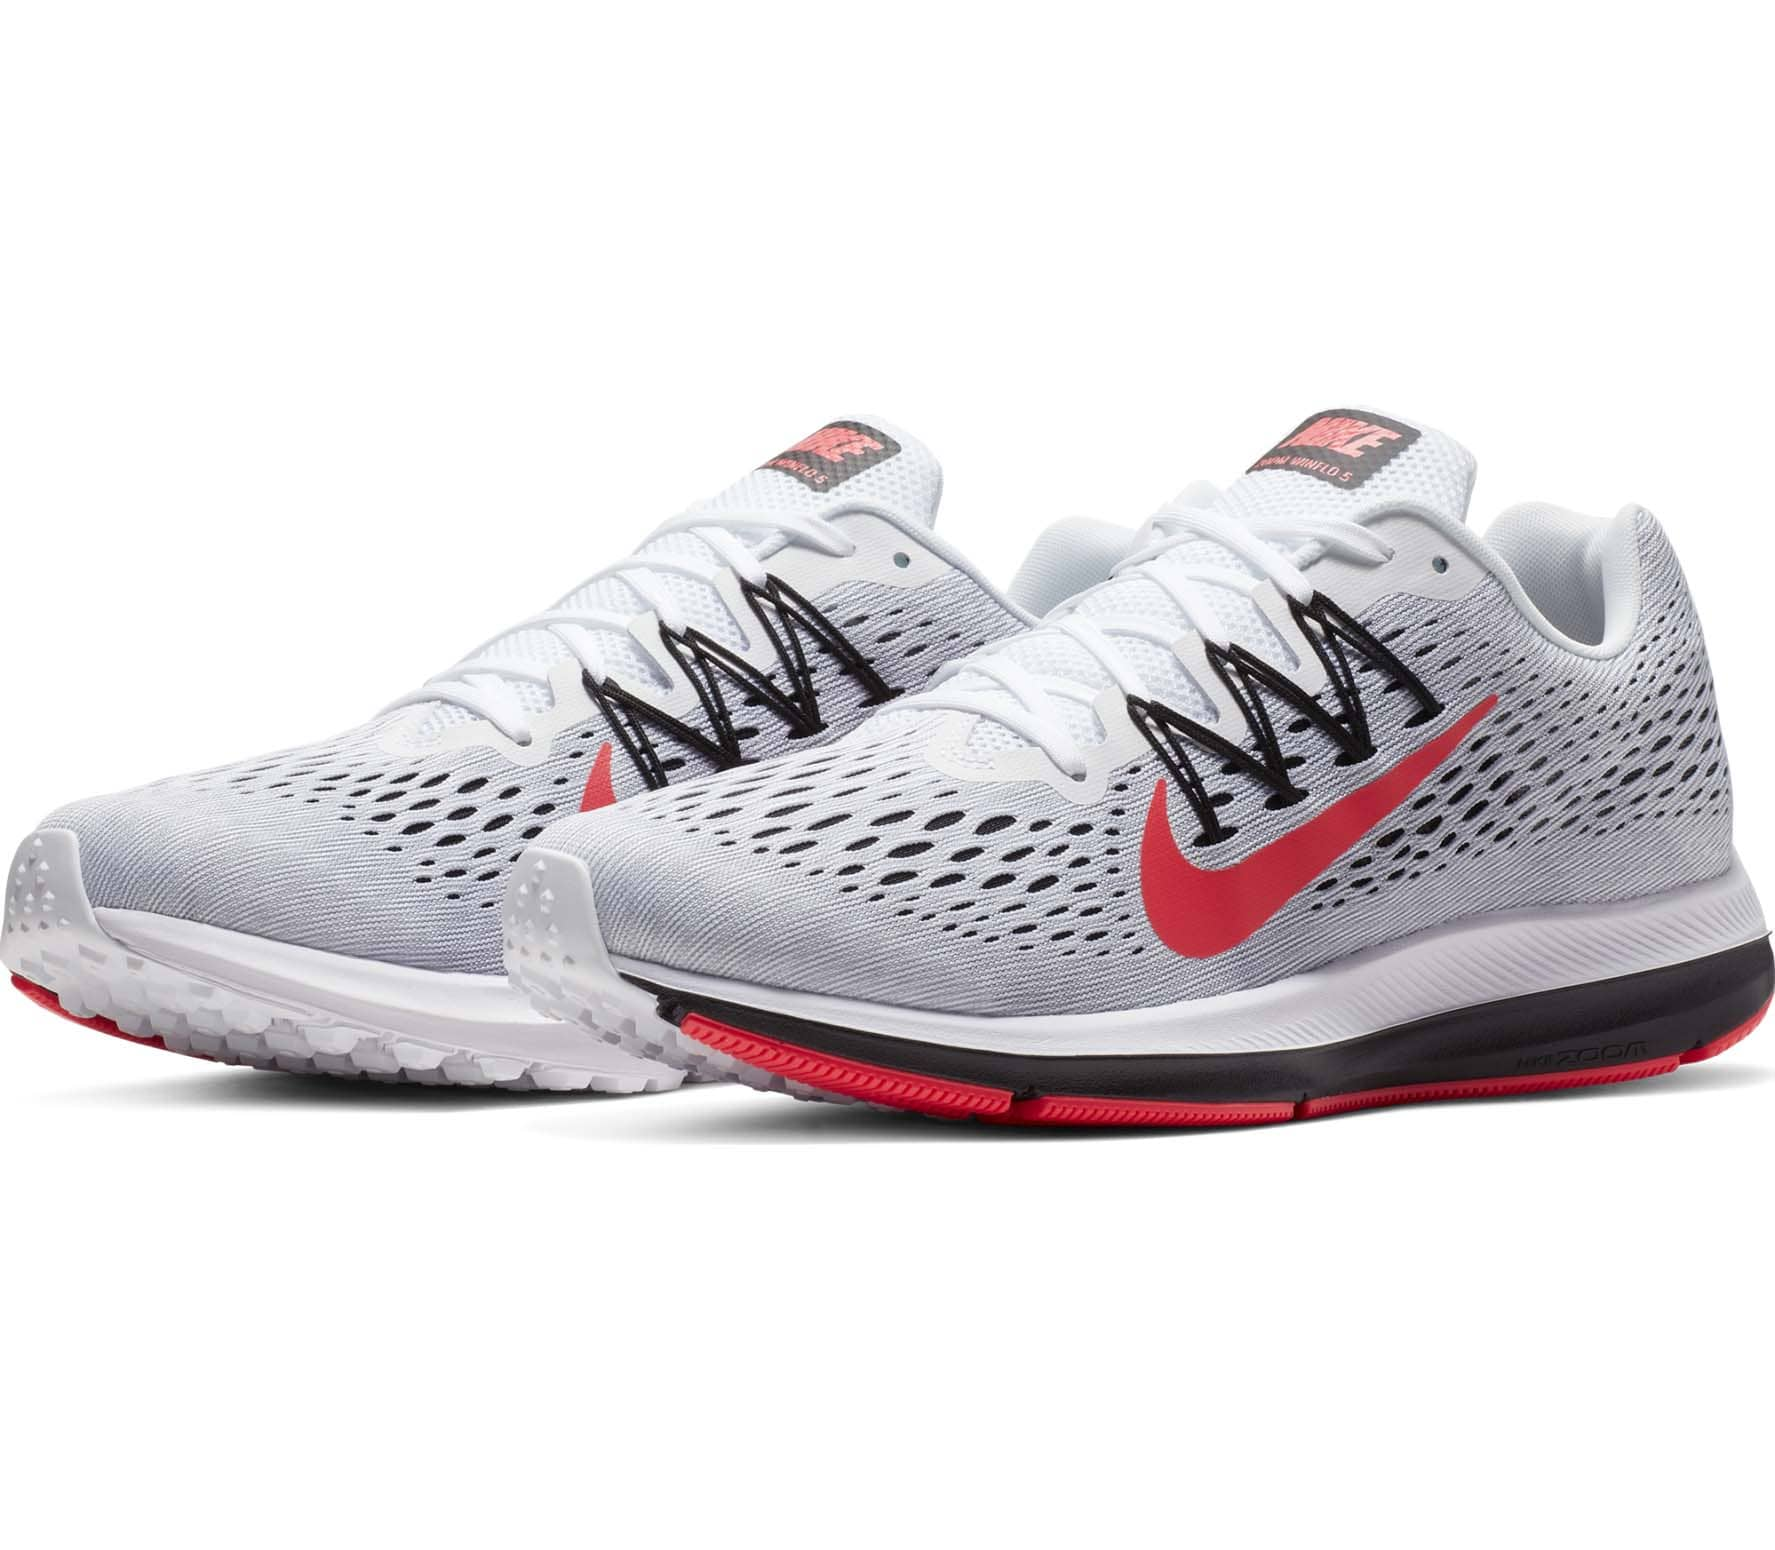 low priced 656fc 6c1b5 Nike - Air Zoom Winflo 5 Hommes chaussure de course (blanc)